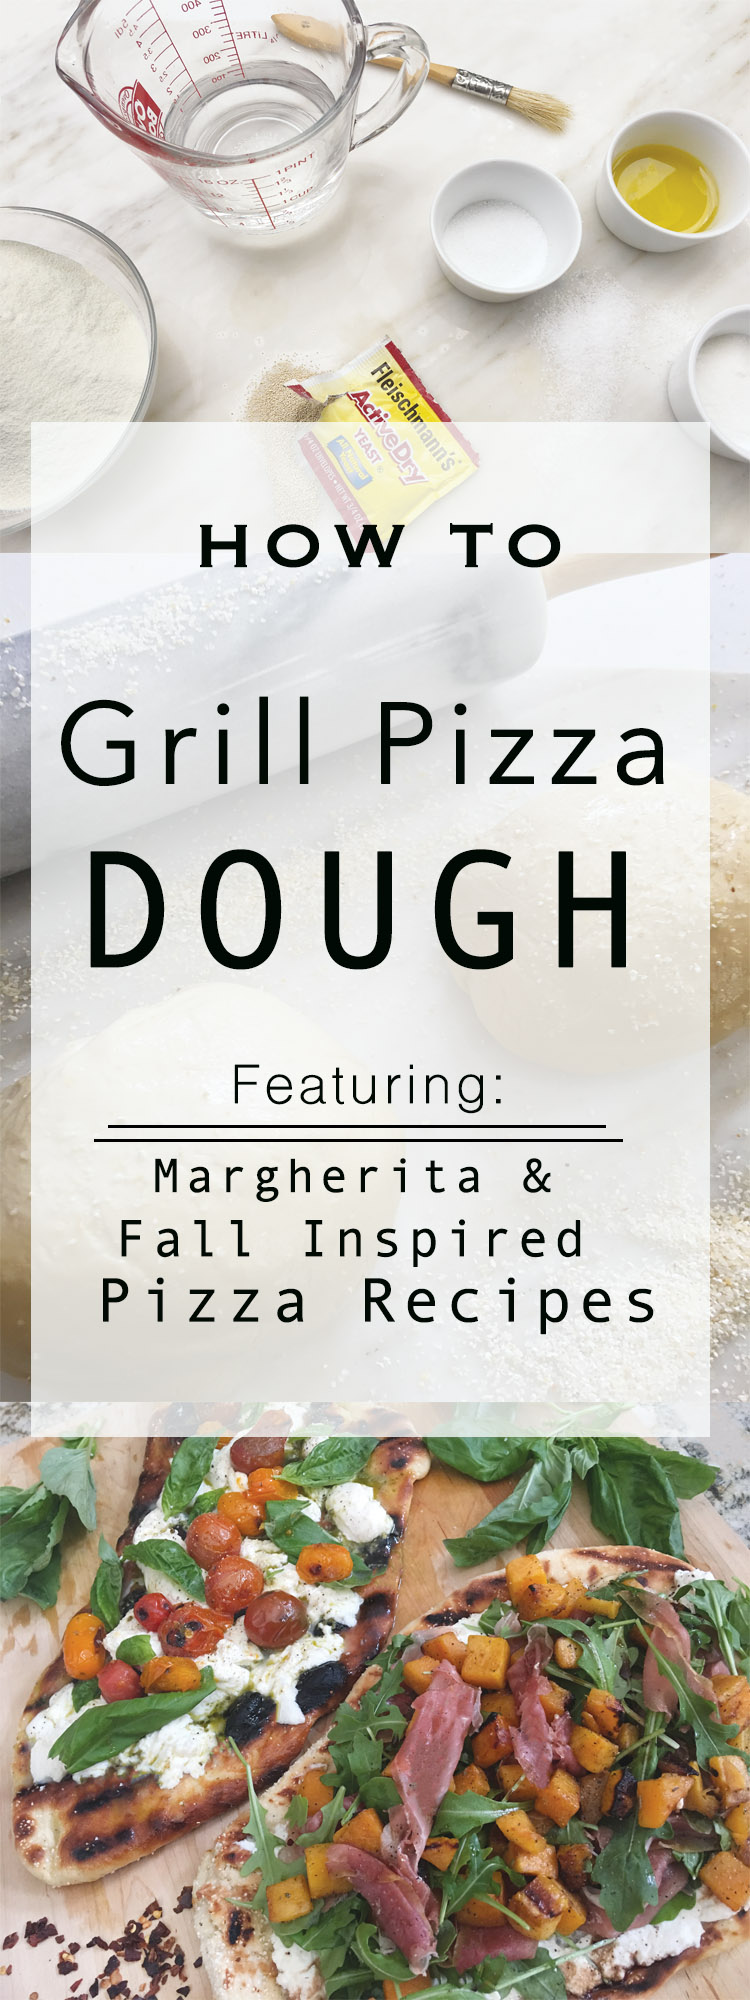 Grilled Pizza: Featuring the Best Pizza Dough Recipe